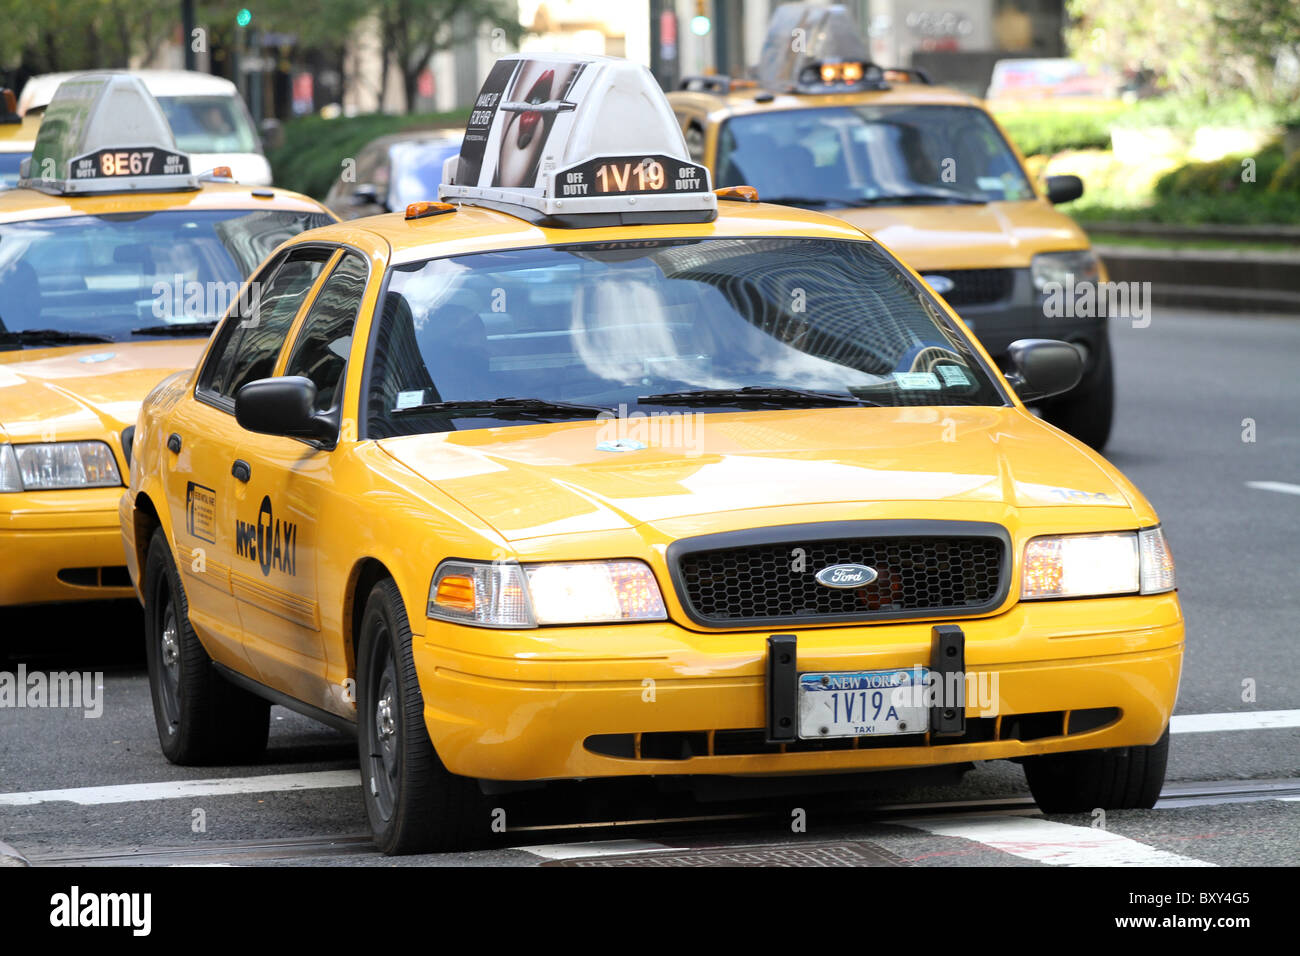 Yellow New York NYC taxi cab in New York, America - Stock Image